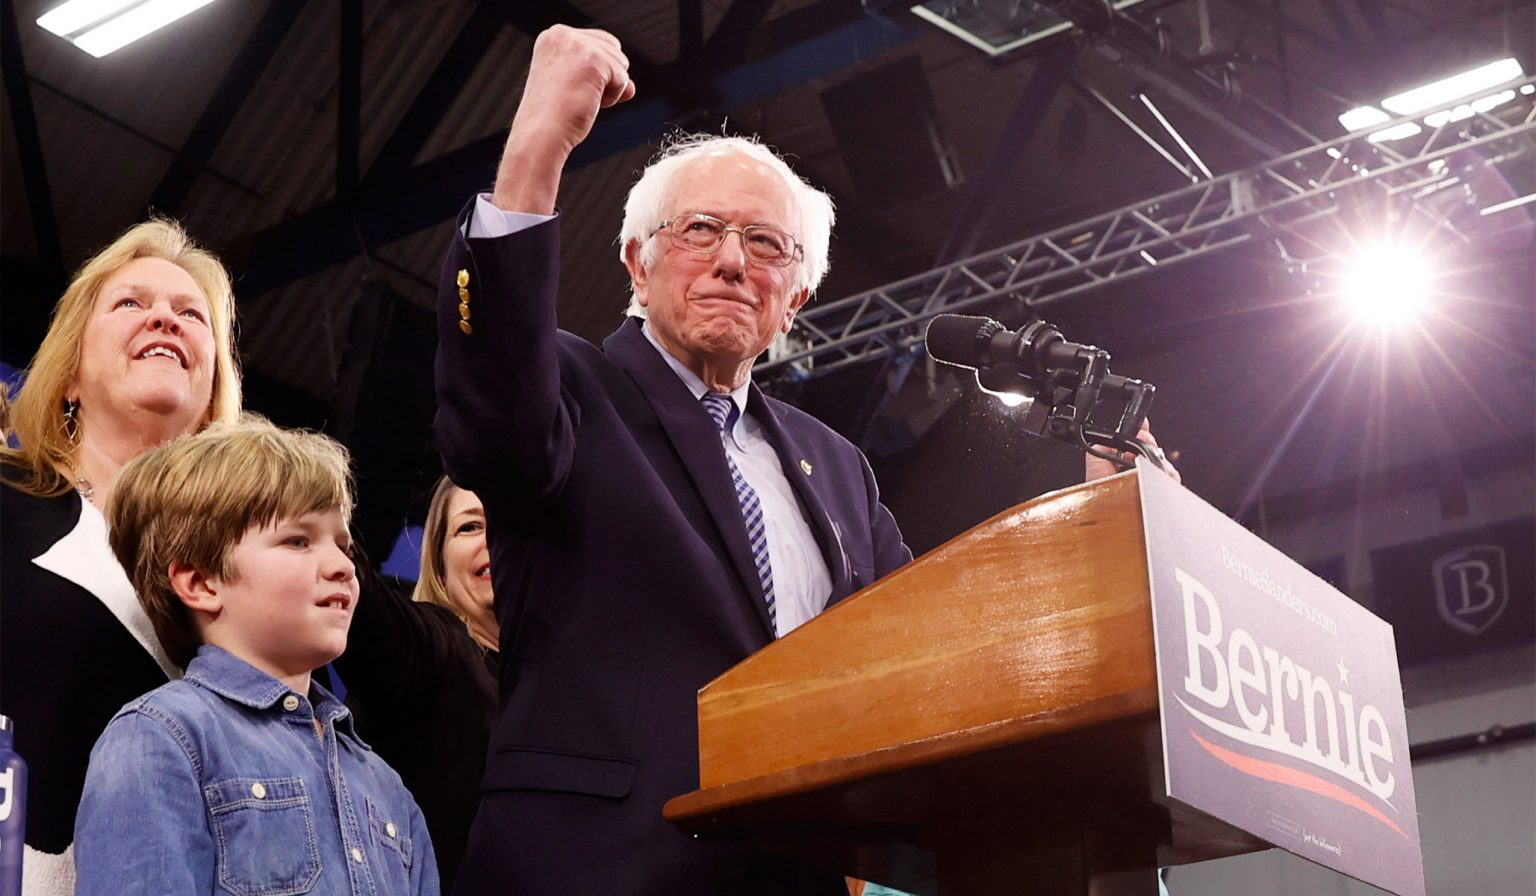 Bernie Sanders 'wins' New Hampshire, Andrew Yang drops out, and now I am sad - Bent Corner